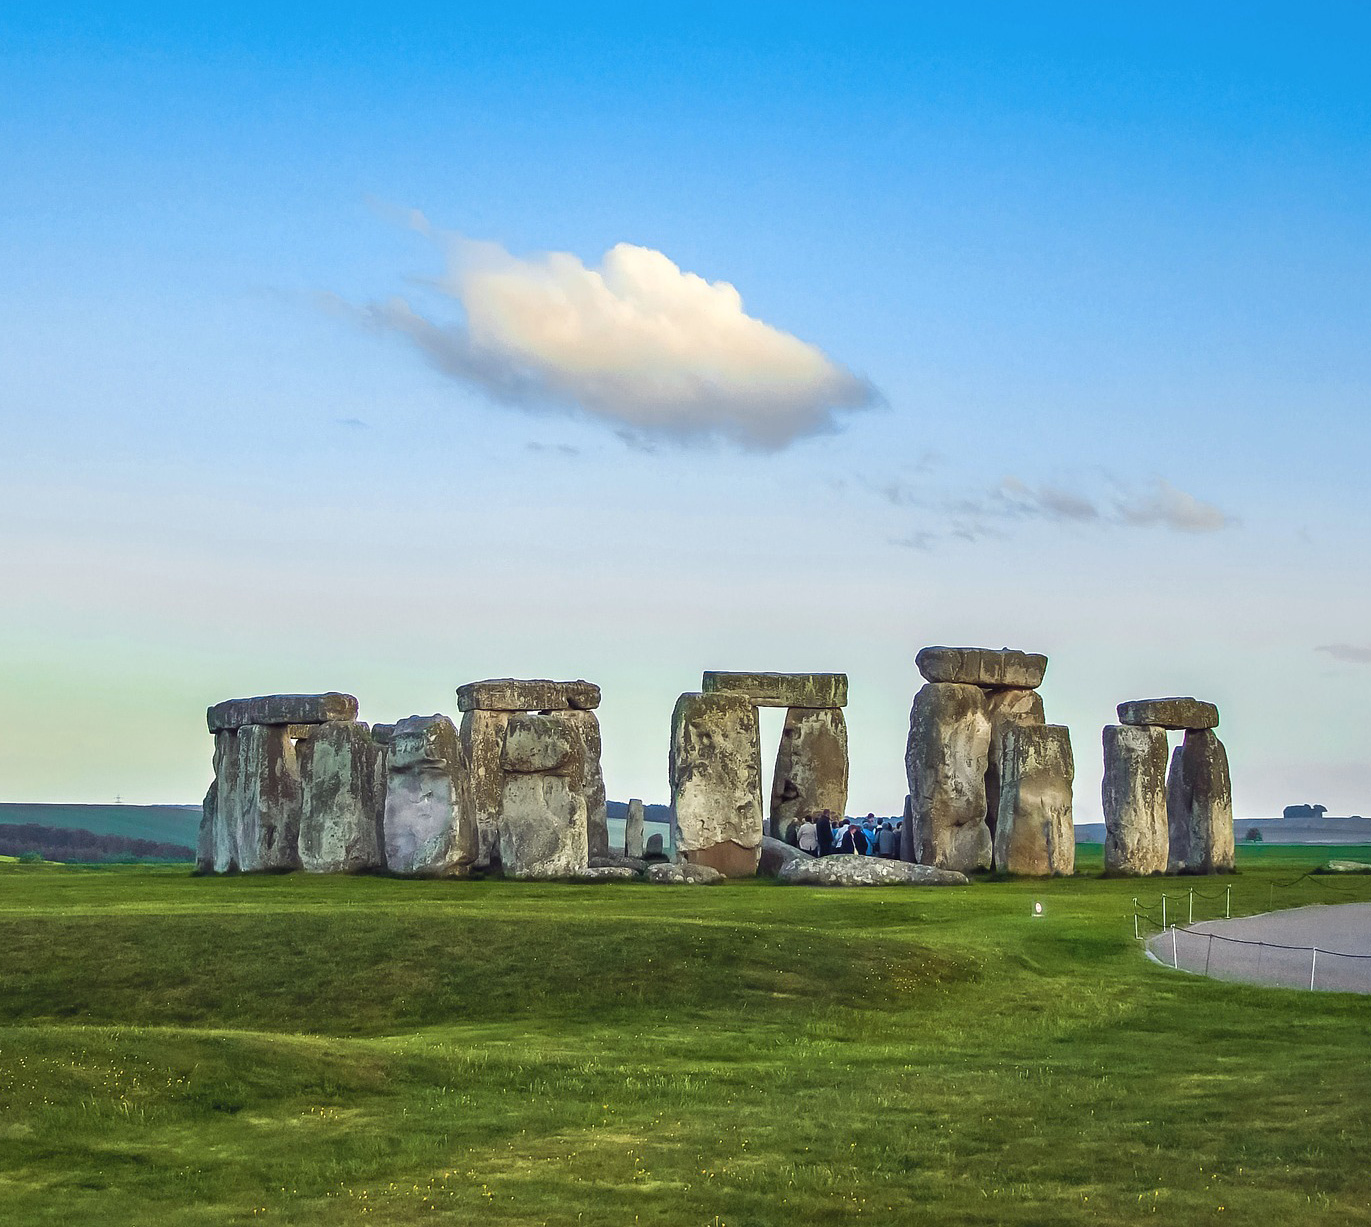 Women's Travel Club England & Wales Tour - Stonehenge